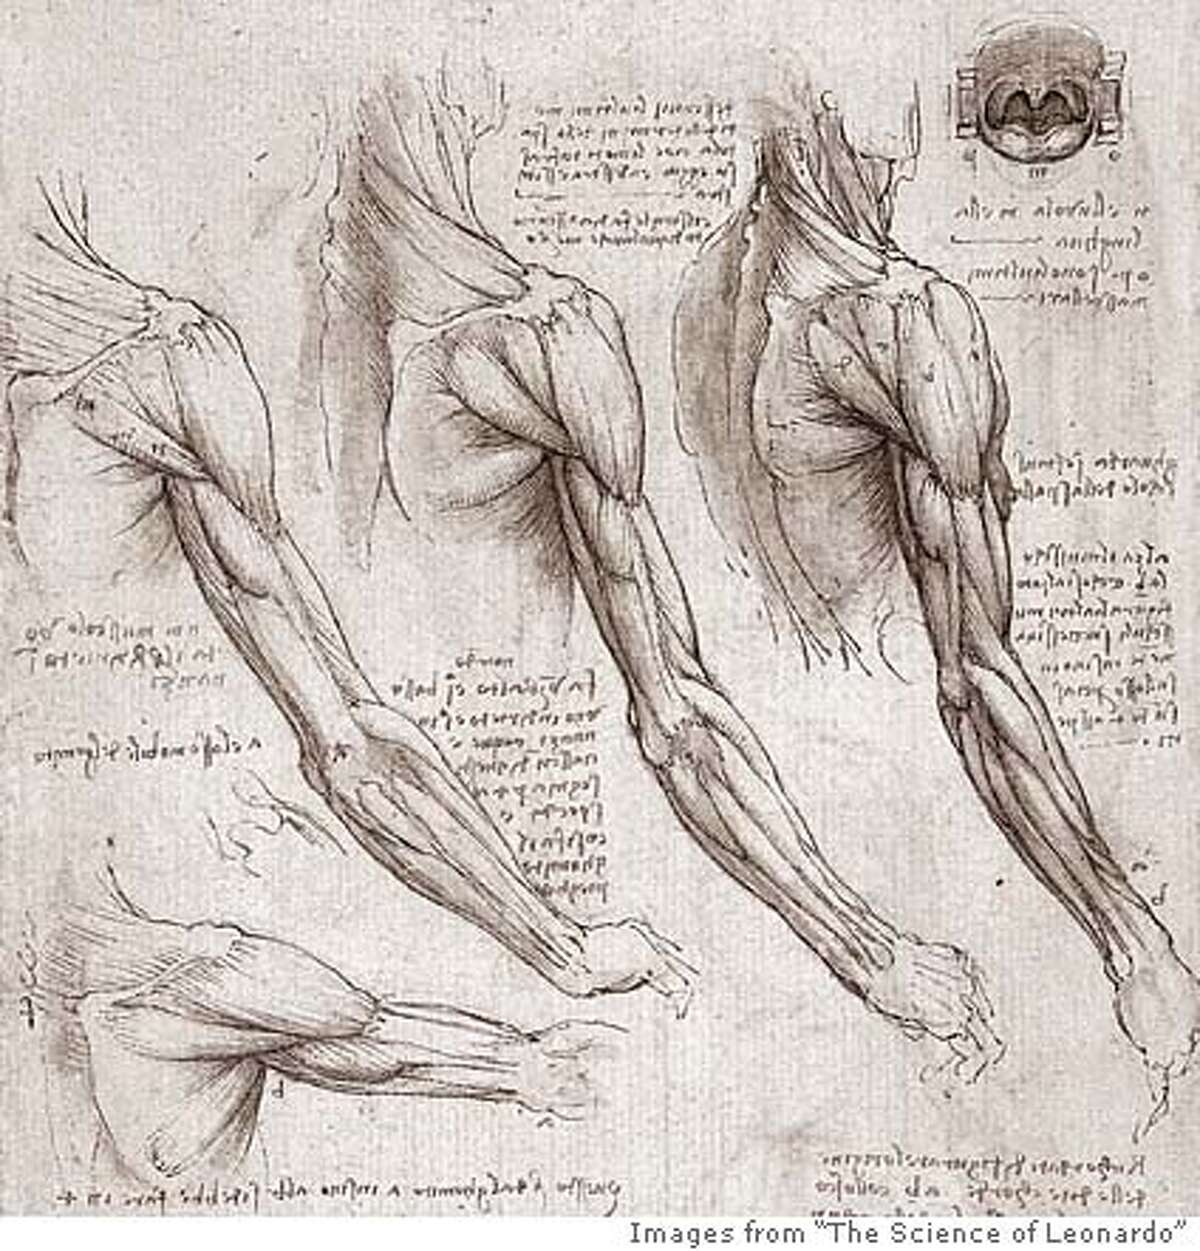 Muscles of the arm and shoulder in rotated views (detail), circa 1510, Anatomical Studies, folio 141v.